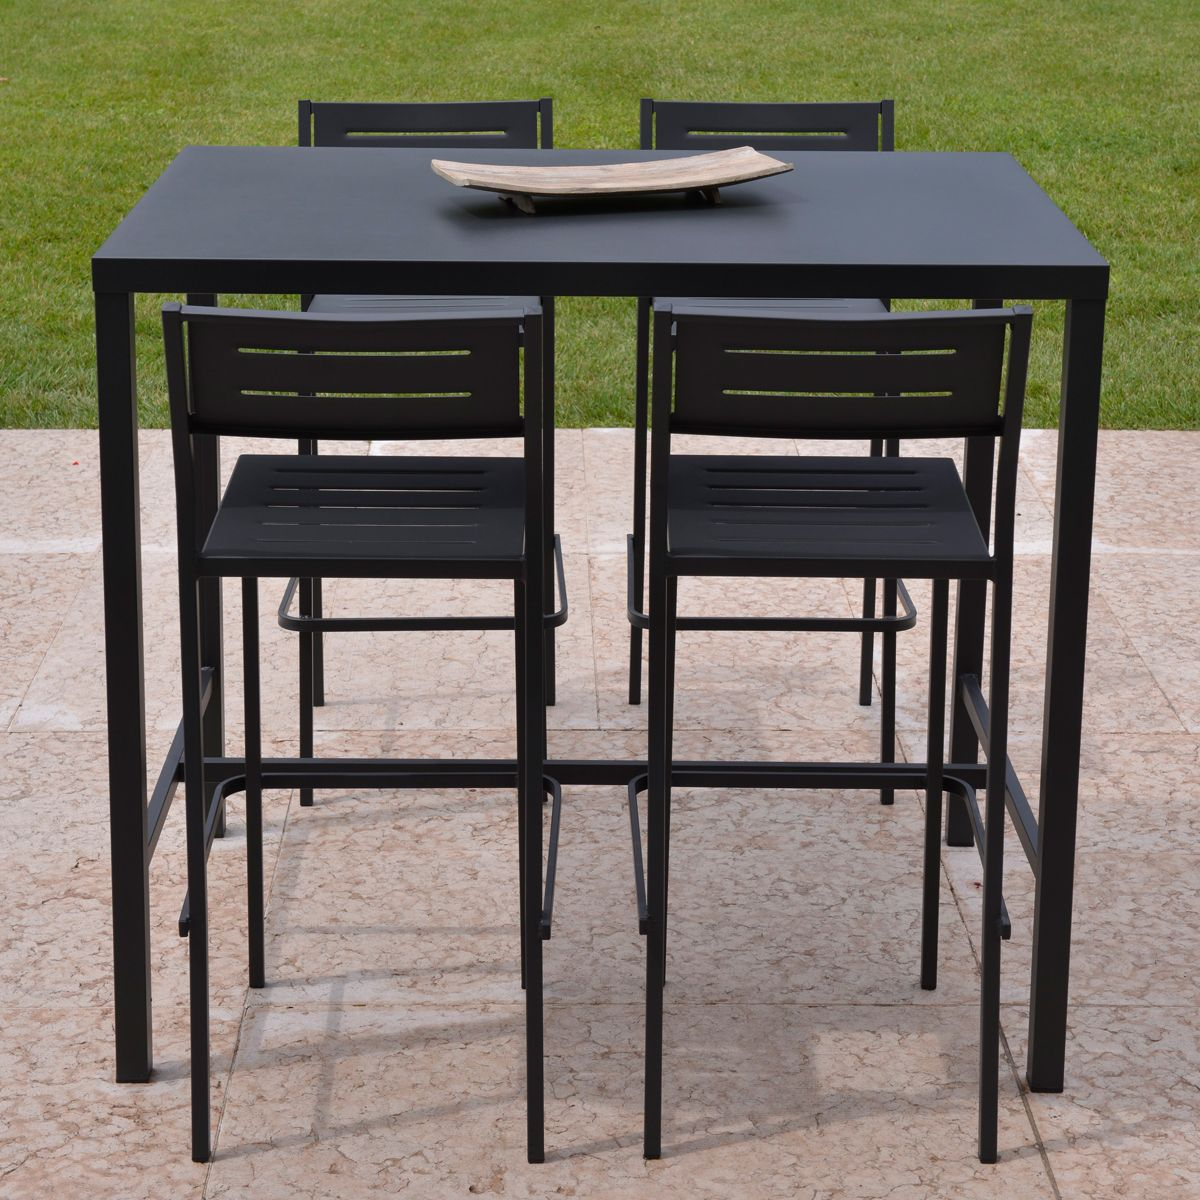 Ensemble de jardin table haute tabouret dorio rd italia - Table de jardin design italien ...